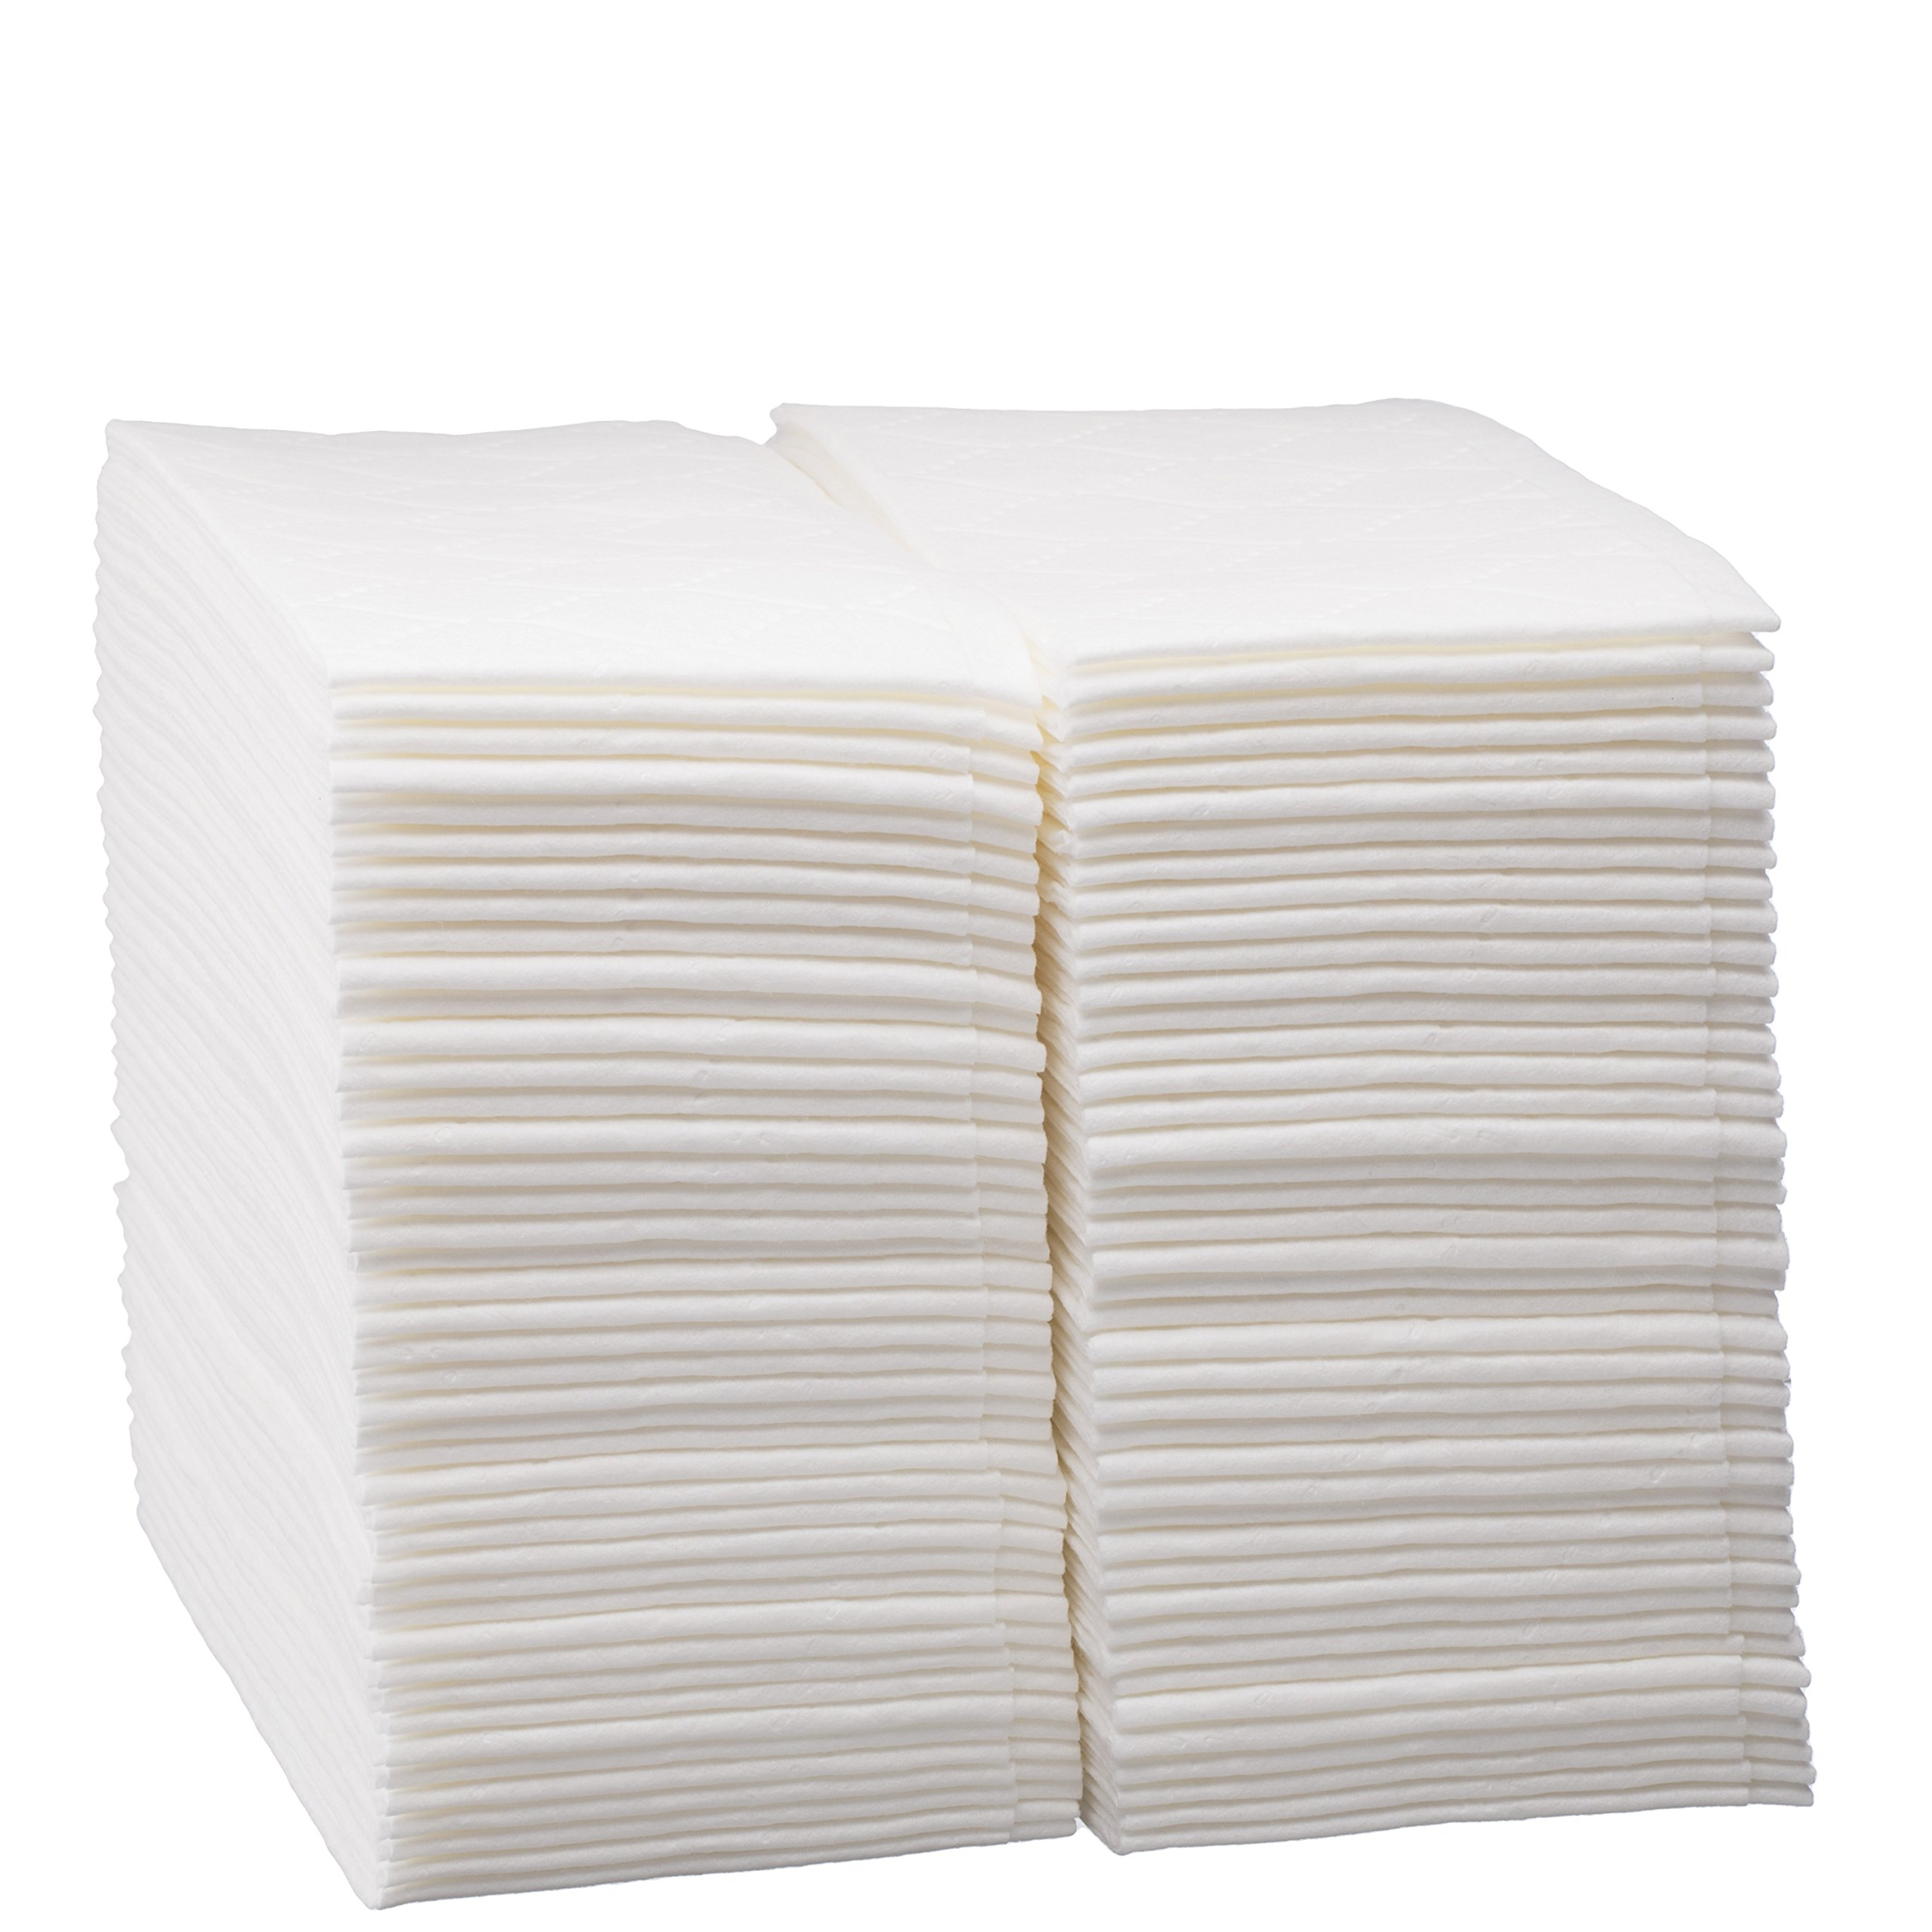 Luxury Linen Feel Disposable Guest Hand Towels in Bulk, Soft & Absorbent Cloth Like Paper Napkin for Bathroom, Kitchen, Weddings, Parties, Dinners or Events, White 100 Count by eDayDeal (500)